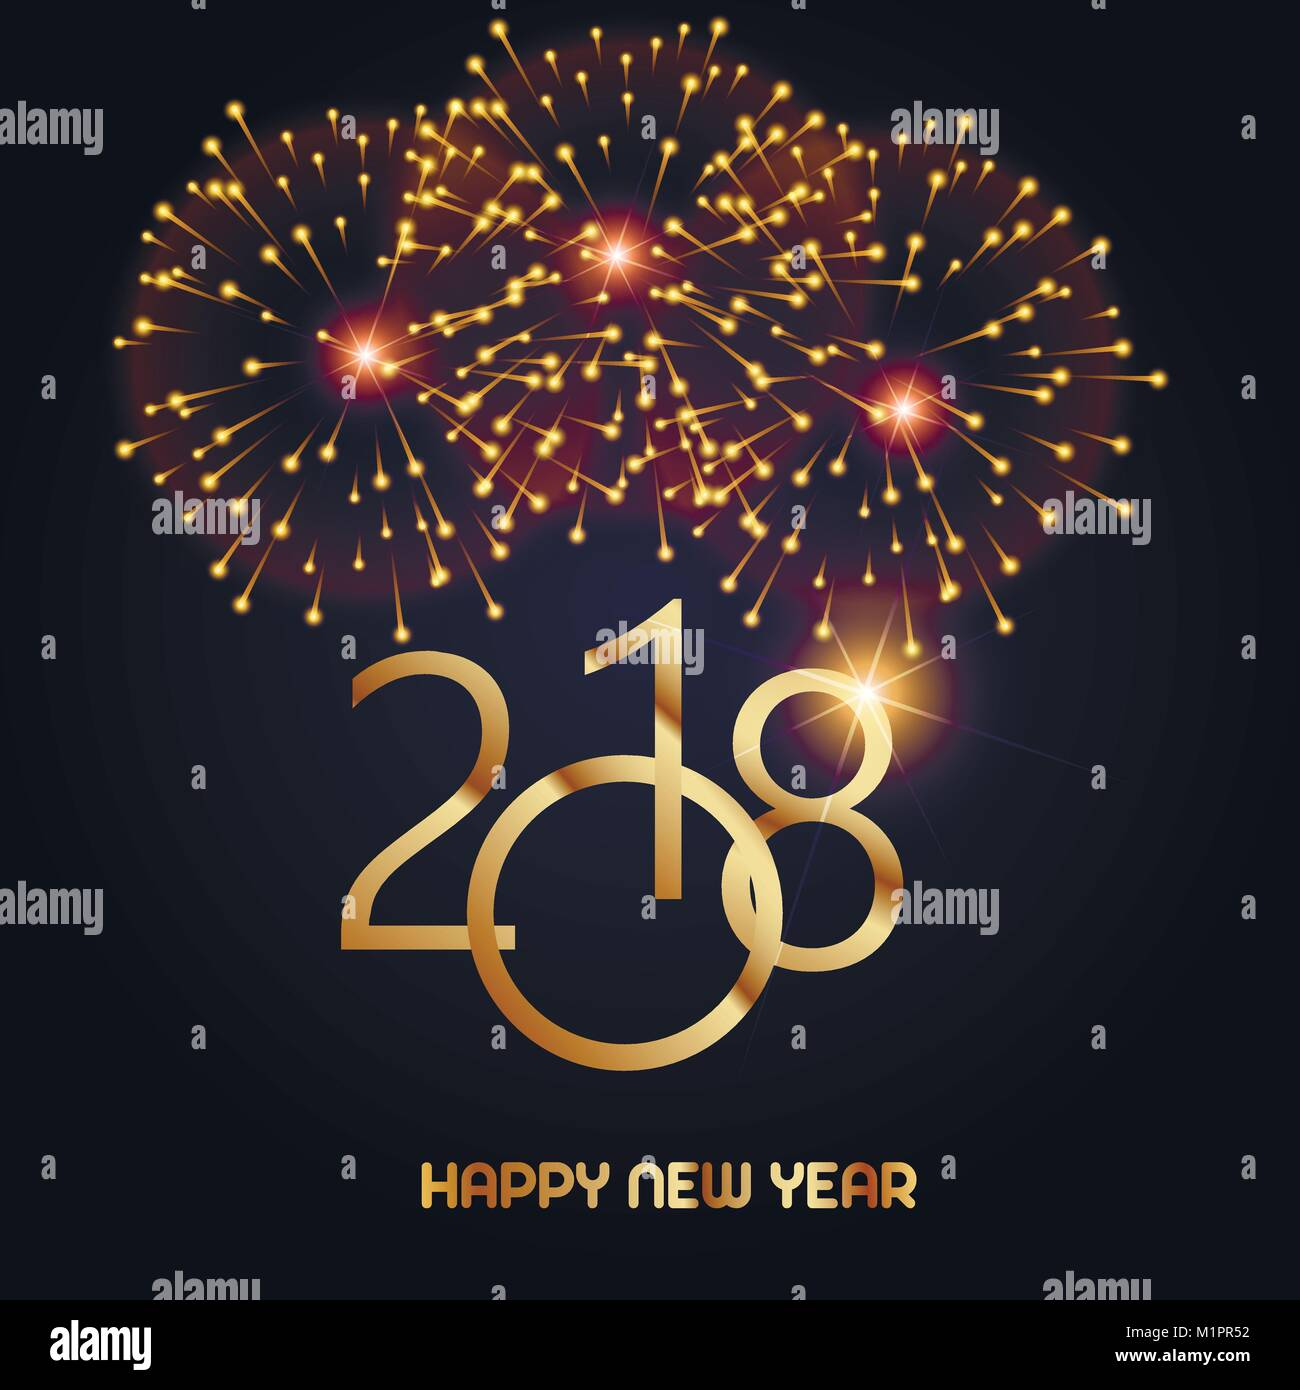 Happy New Year Greeting Card With Shining Gold Text And Fireworks On